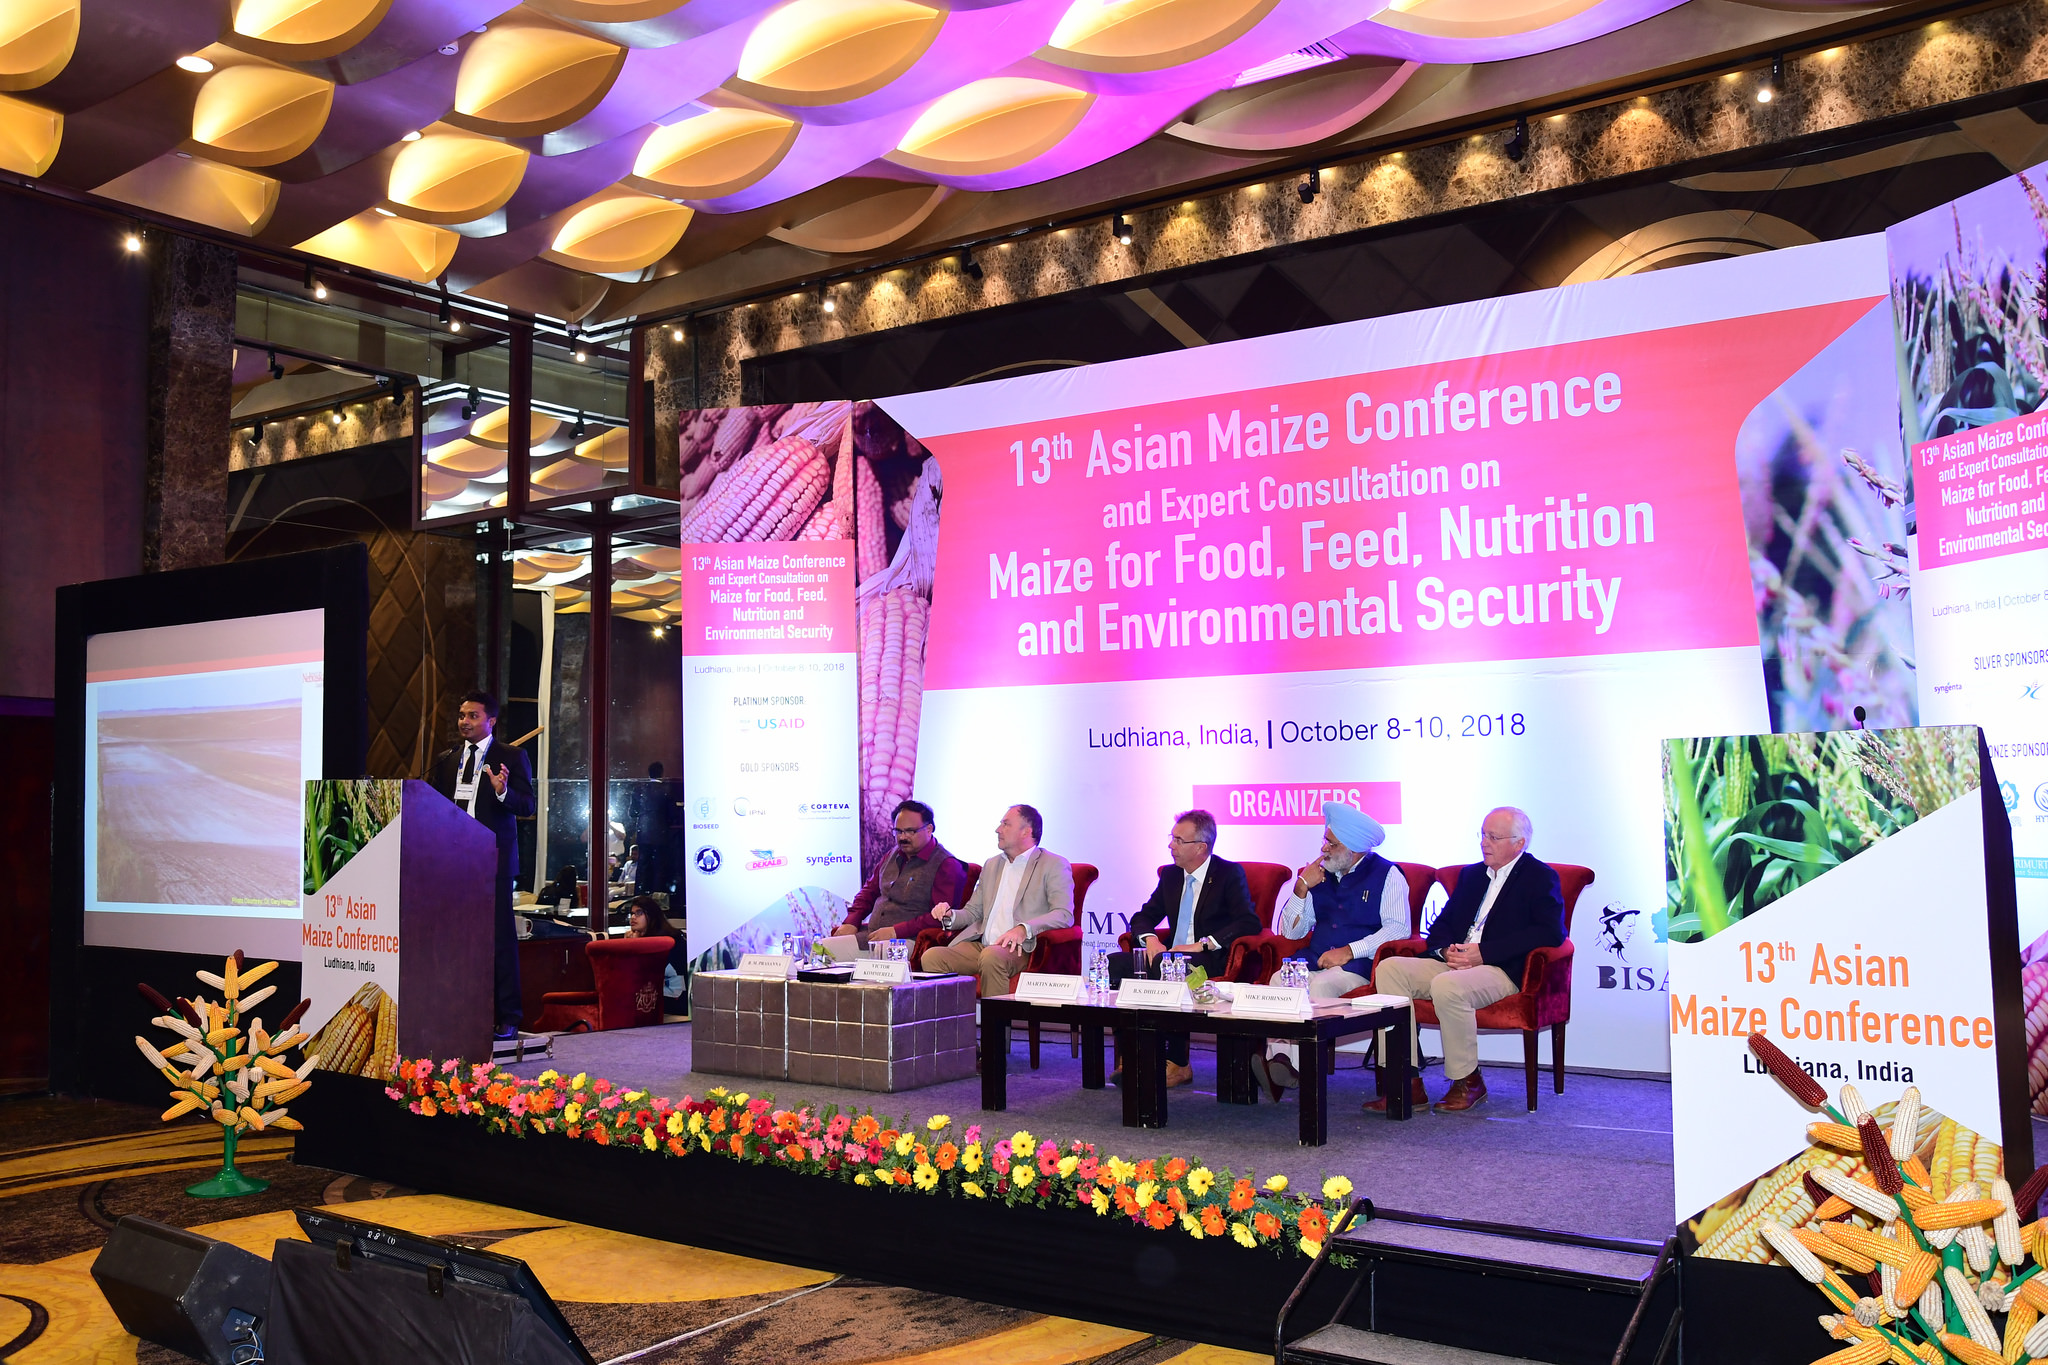 The 13th Asian Maize Conference took place from October 8 to October 10 in Ludhiana, India. (Photo: Manjit Singh/Punjab Agricultural University)